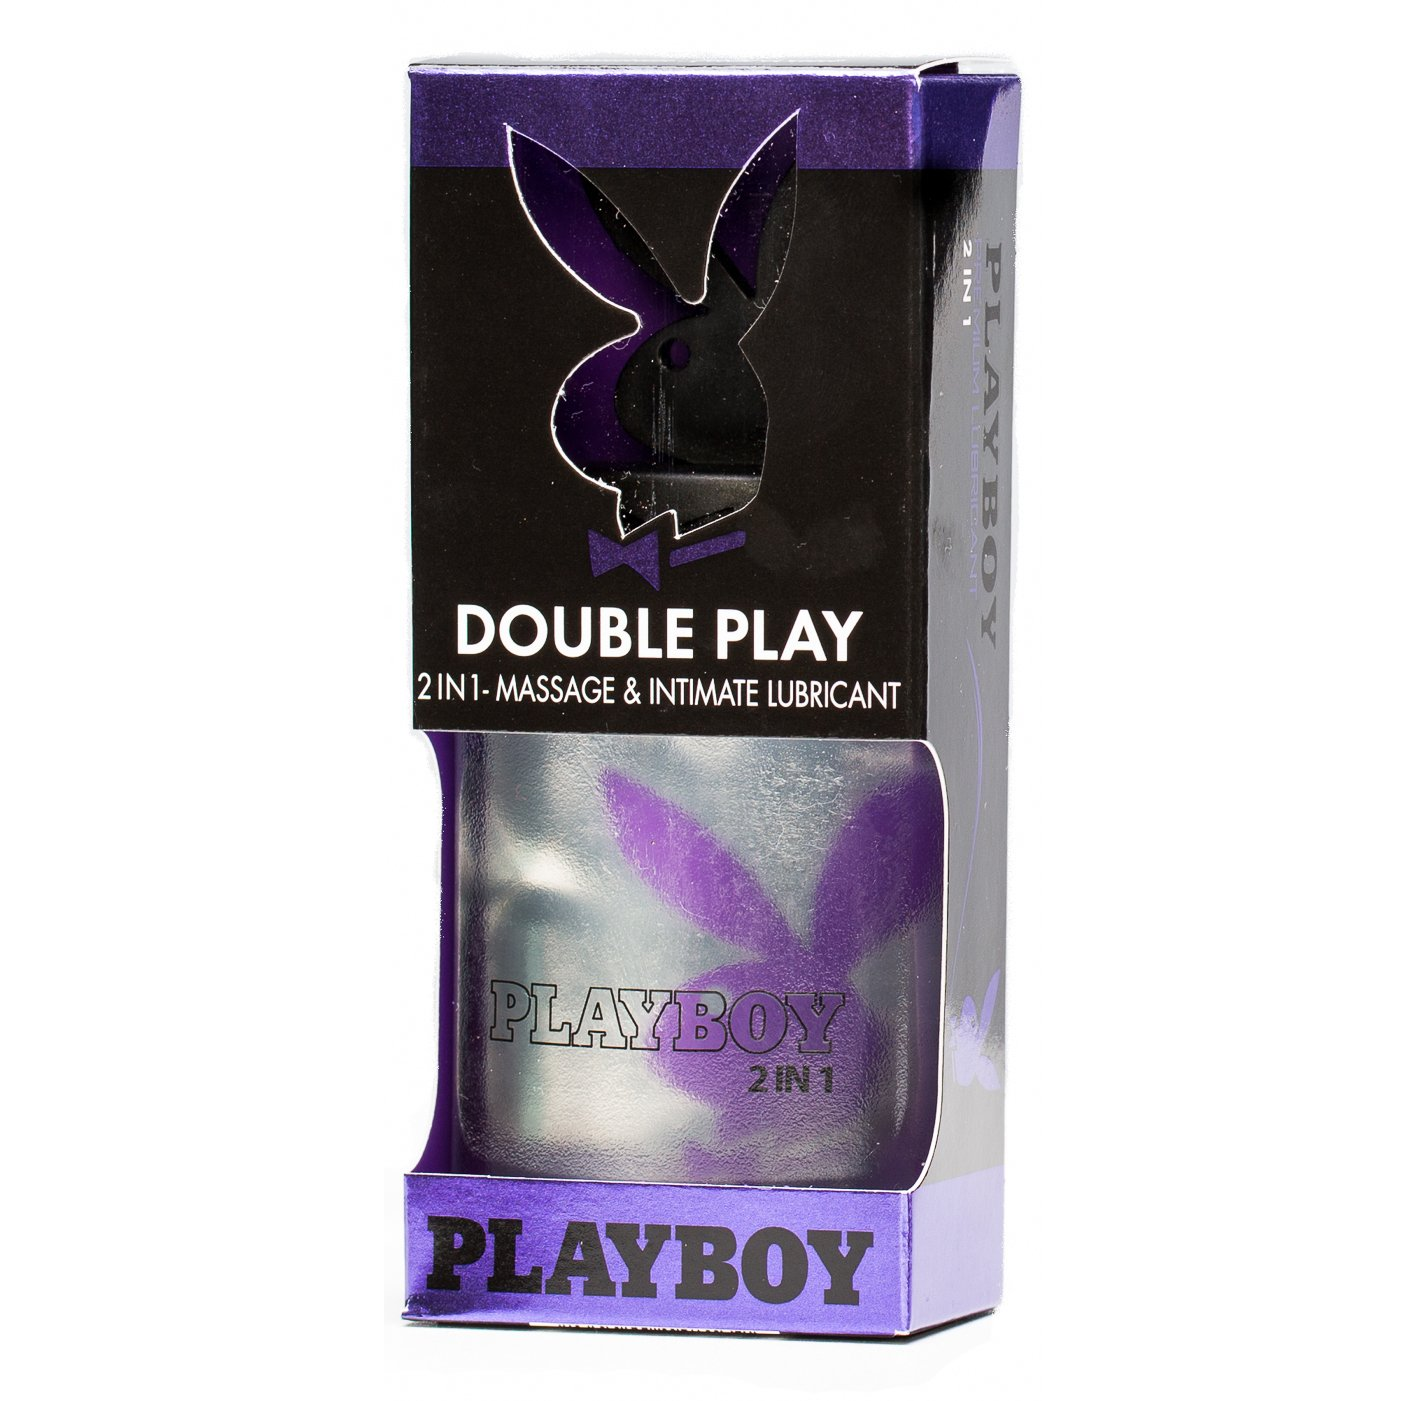 PLAYBOY gel DOUBLE PLAY